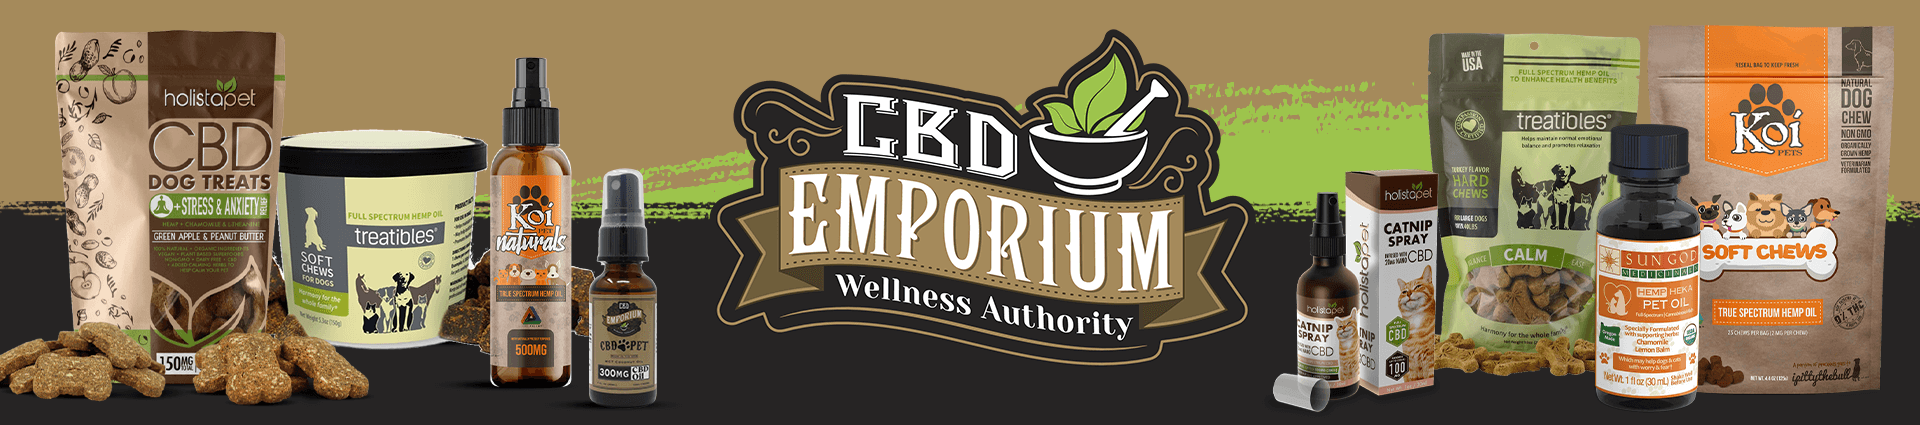 CBD for Pets products at CBD Emporium